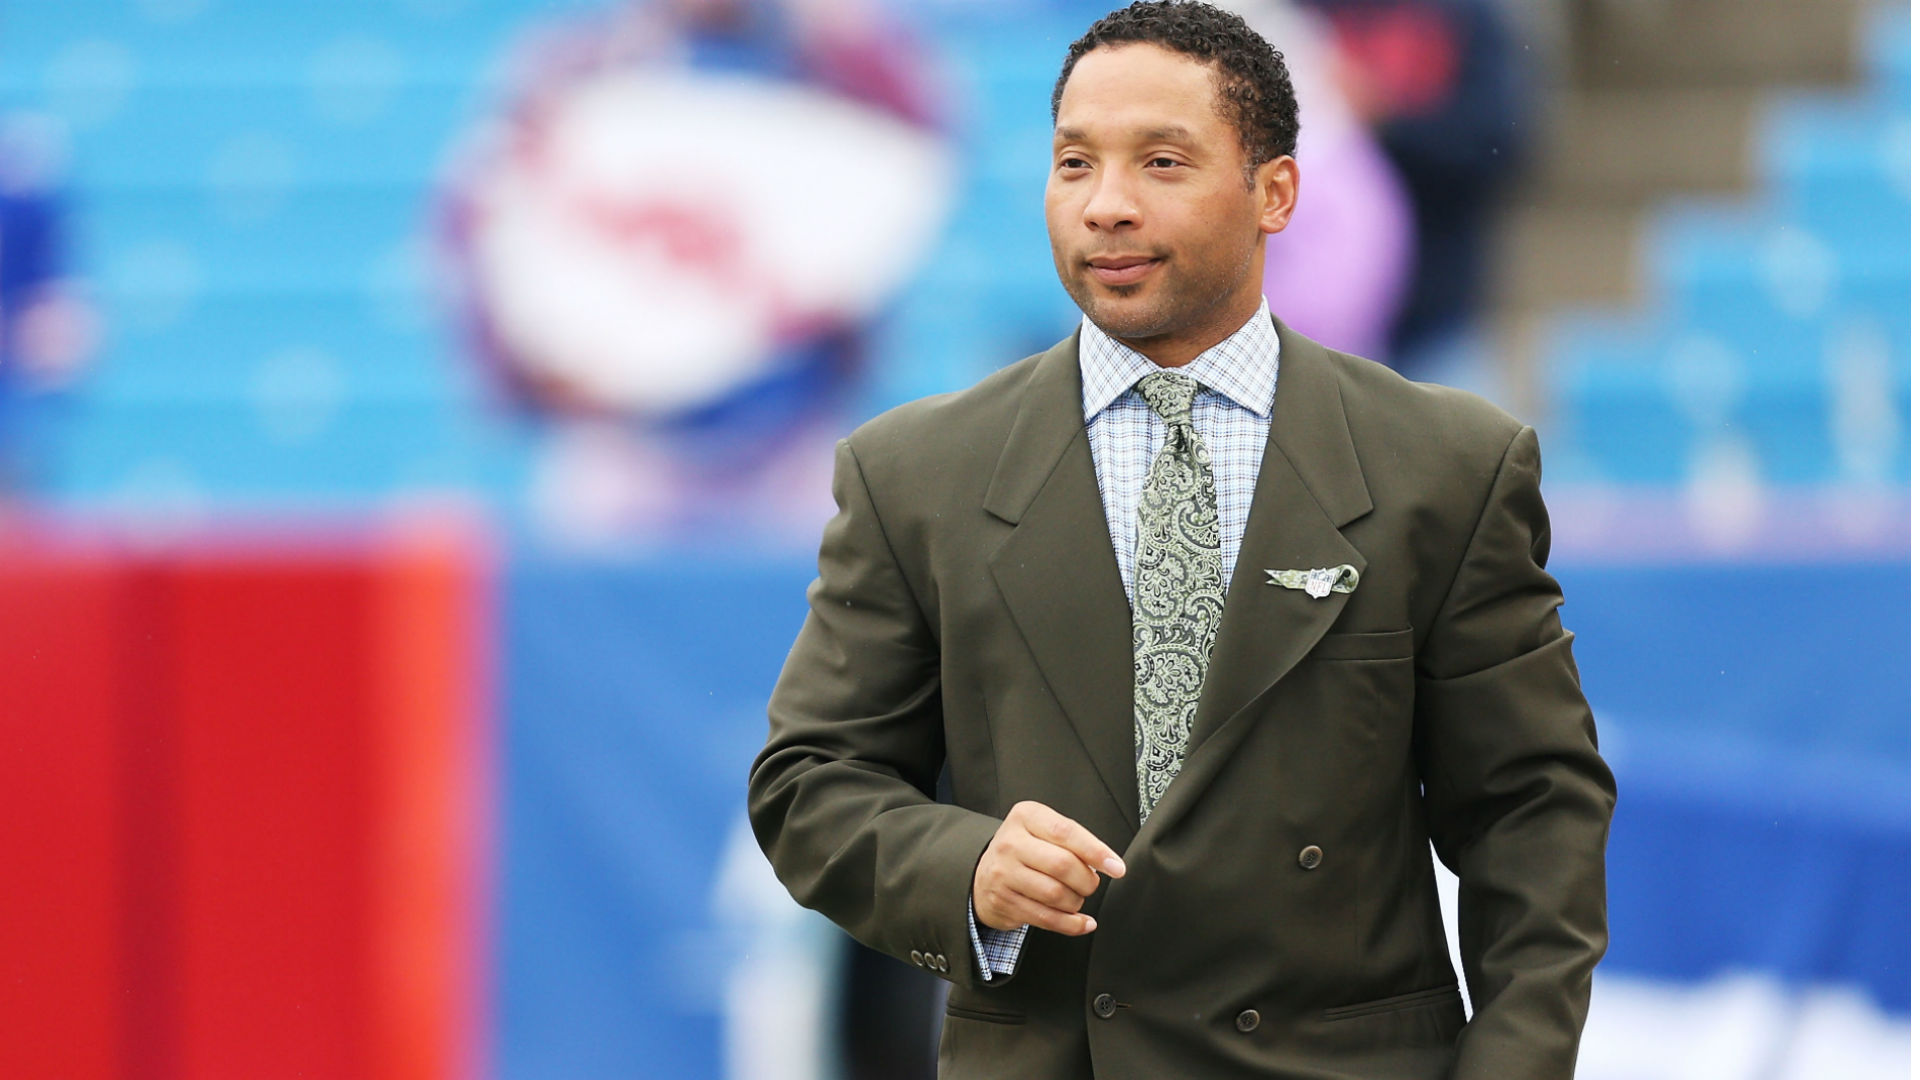 whaley-doug-010715-usnews-getty-ftr